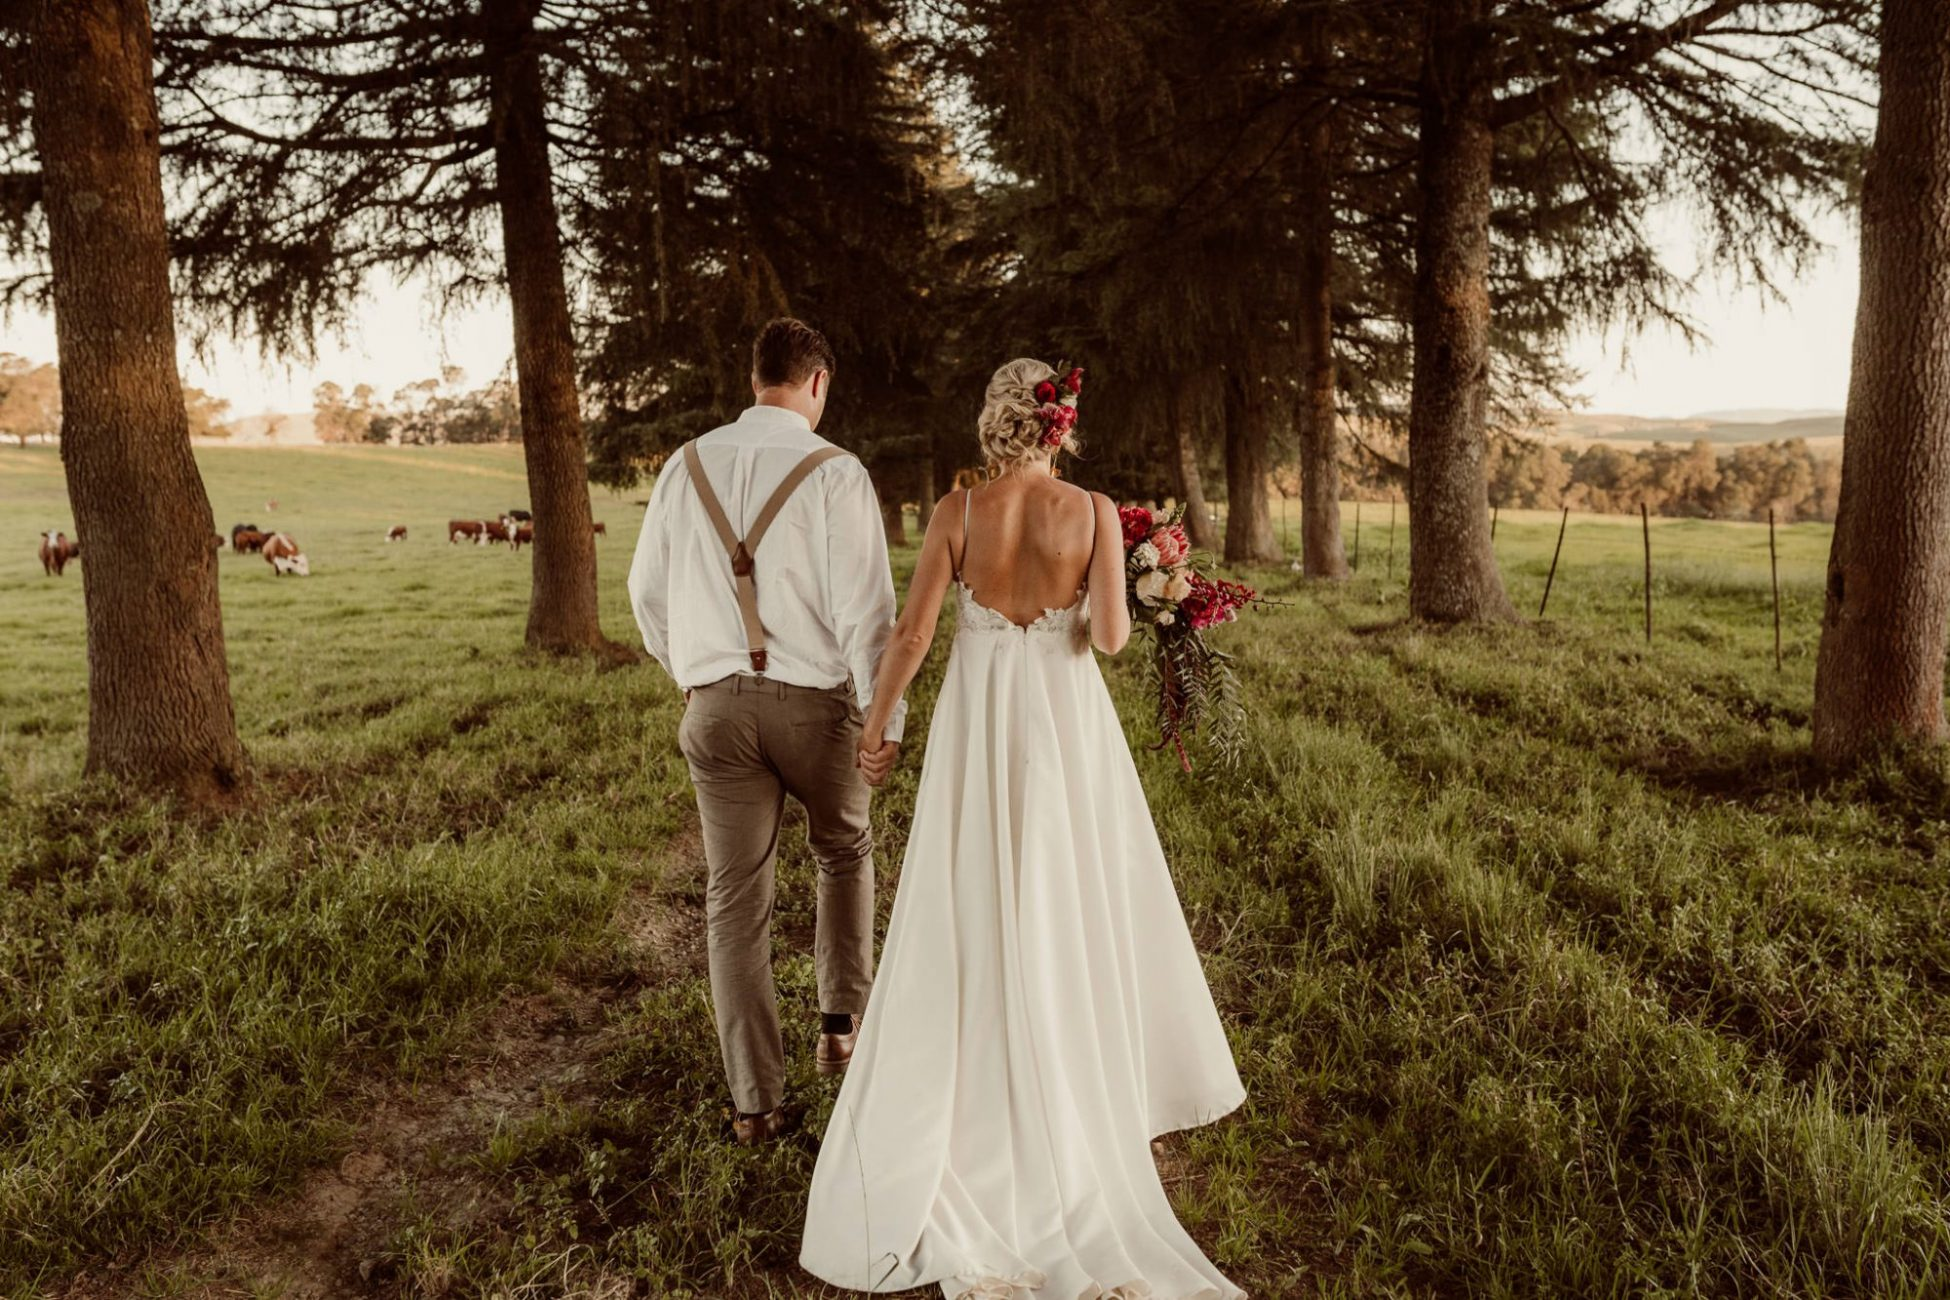 sunset-bellwood-stud-kzn-midlands-nature-wedding-ceremony-cr8tiveduo-destination-photography-videography-cr8tive-duo-couple-newly-weds-forest-cows-fields